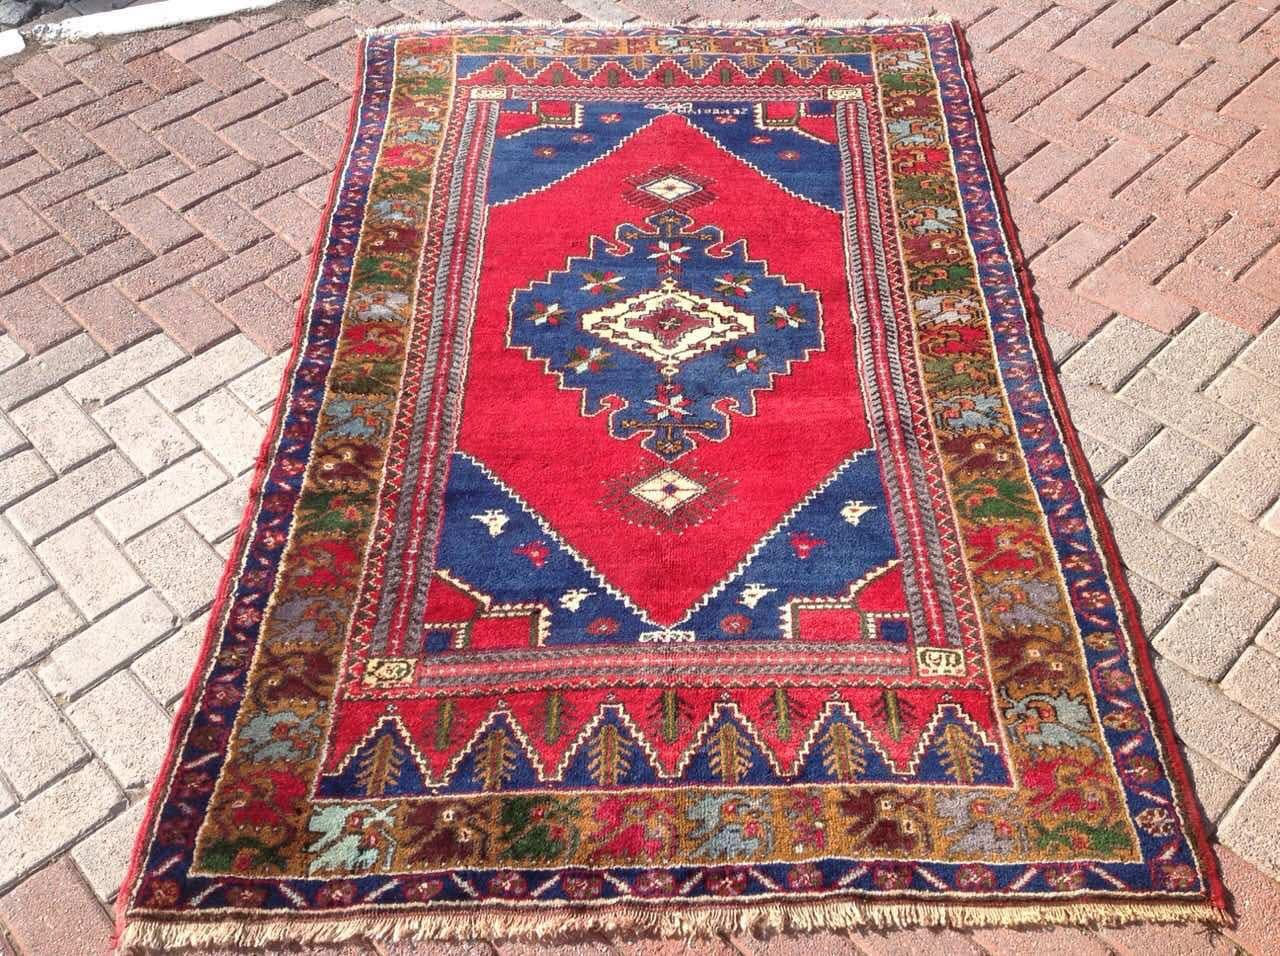 dsc design rugs authentic rug woven rare santa sold barbara carpet a antique genuine center yuruk art of prayer turkish piece